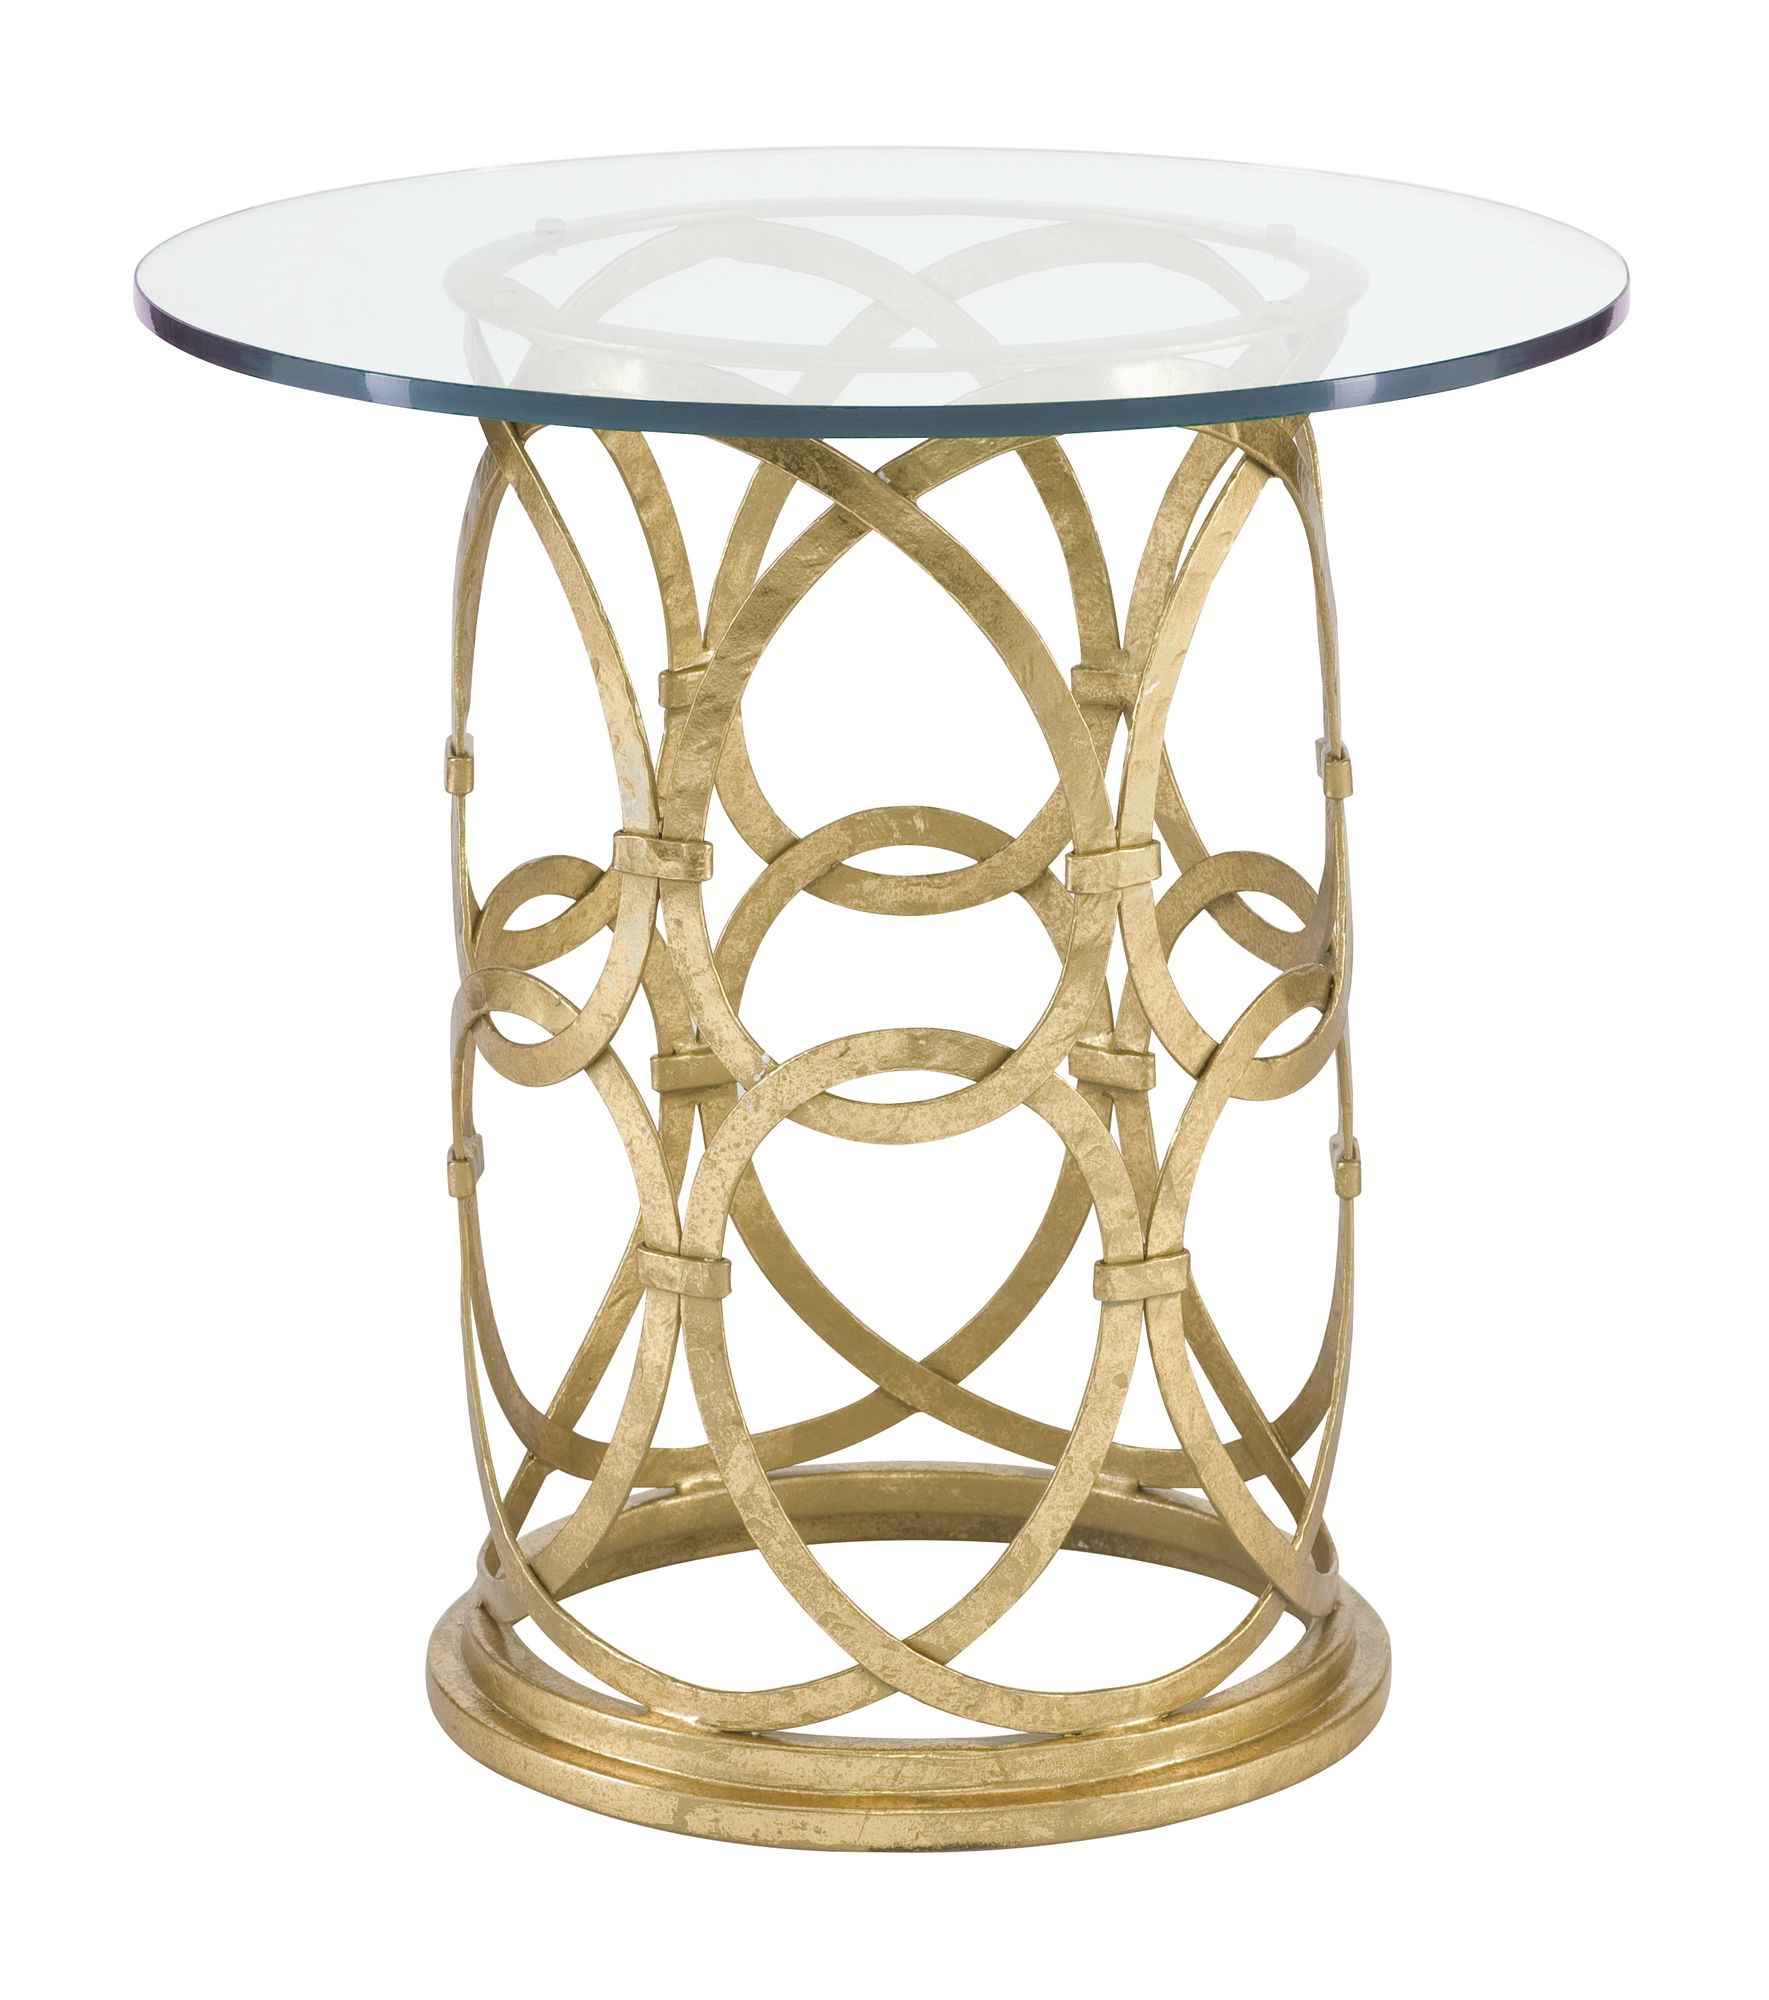 geneva round side table bernhardt dia metal accent with glass top gold base small white garden tiffany look alike lamps marble stone coffee wood furniture edmonton console set